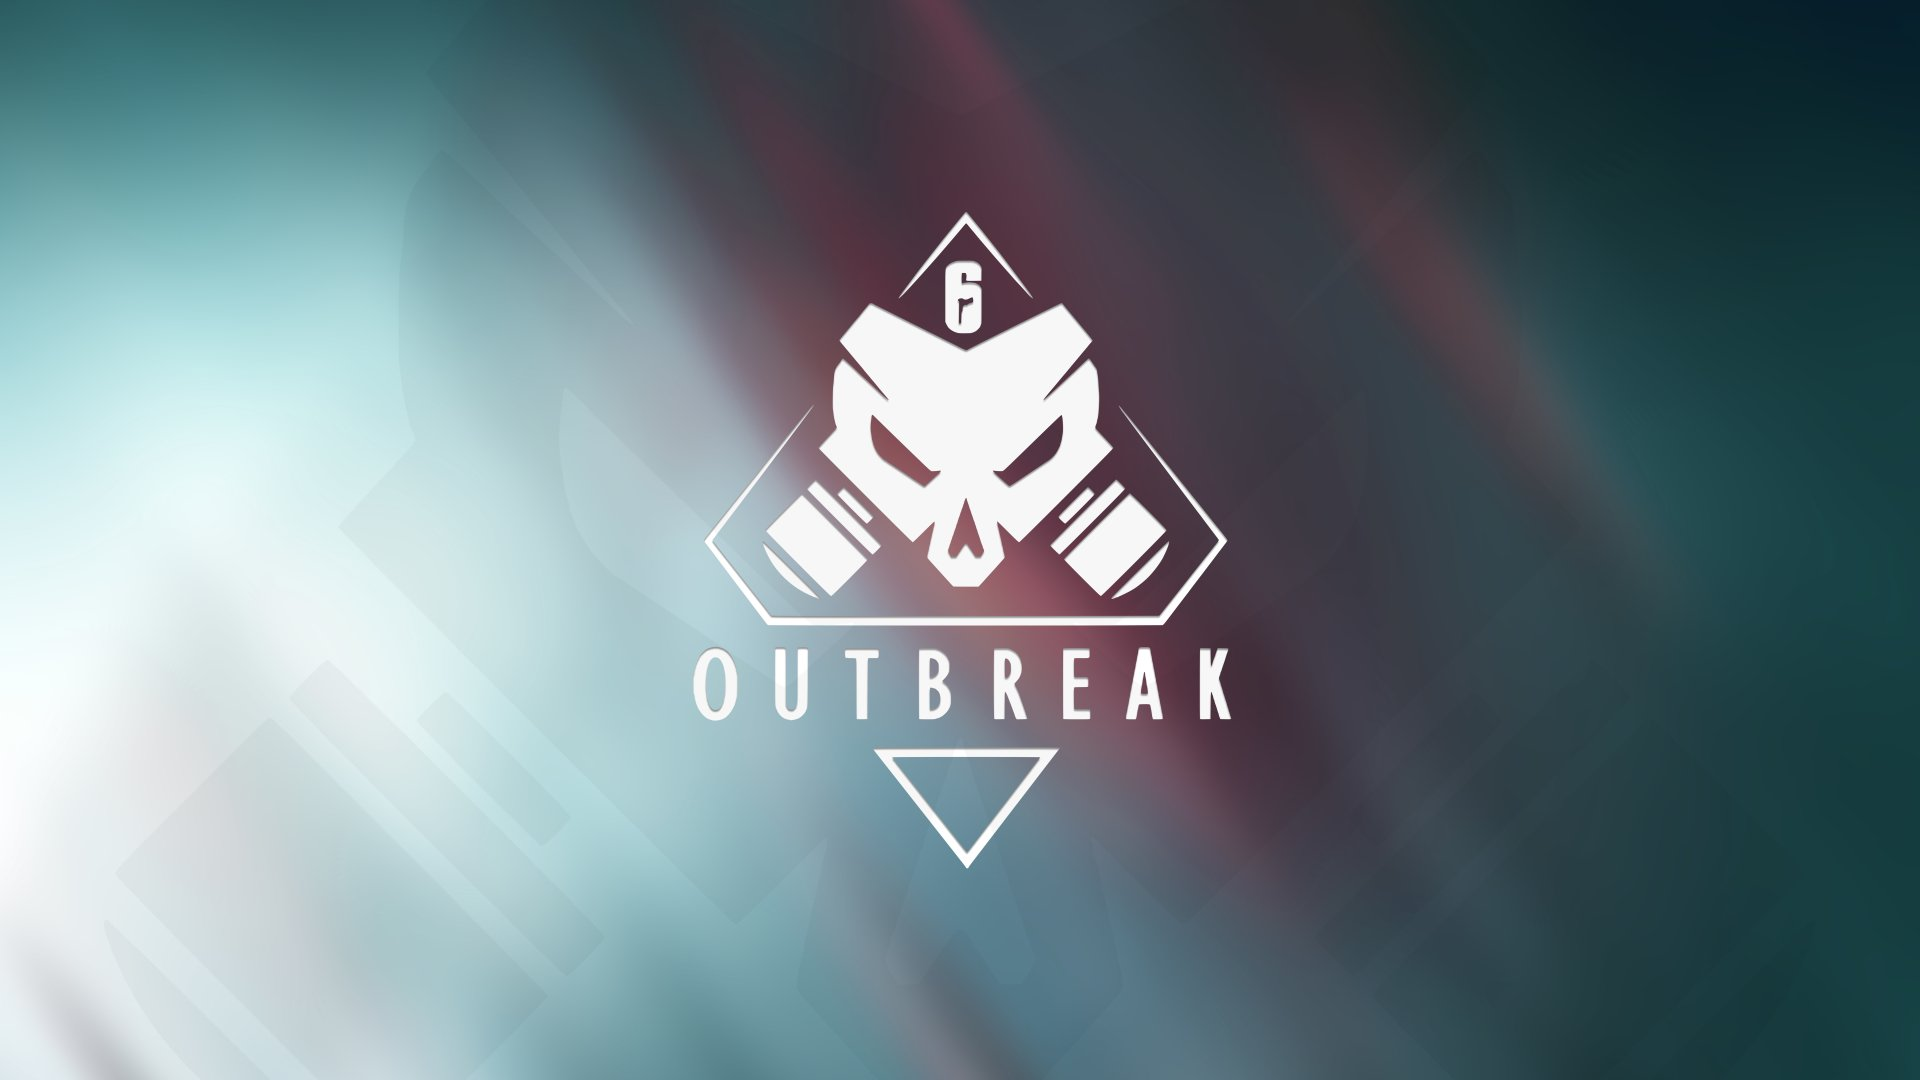 Outbreak 8k Ultra Hd Wallpaper Background Image 12000x6750